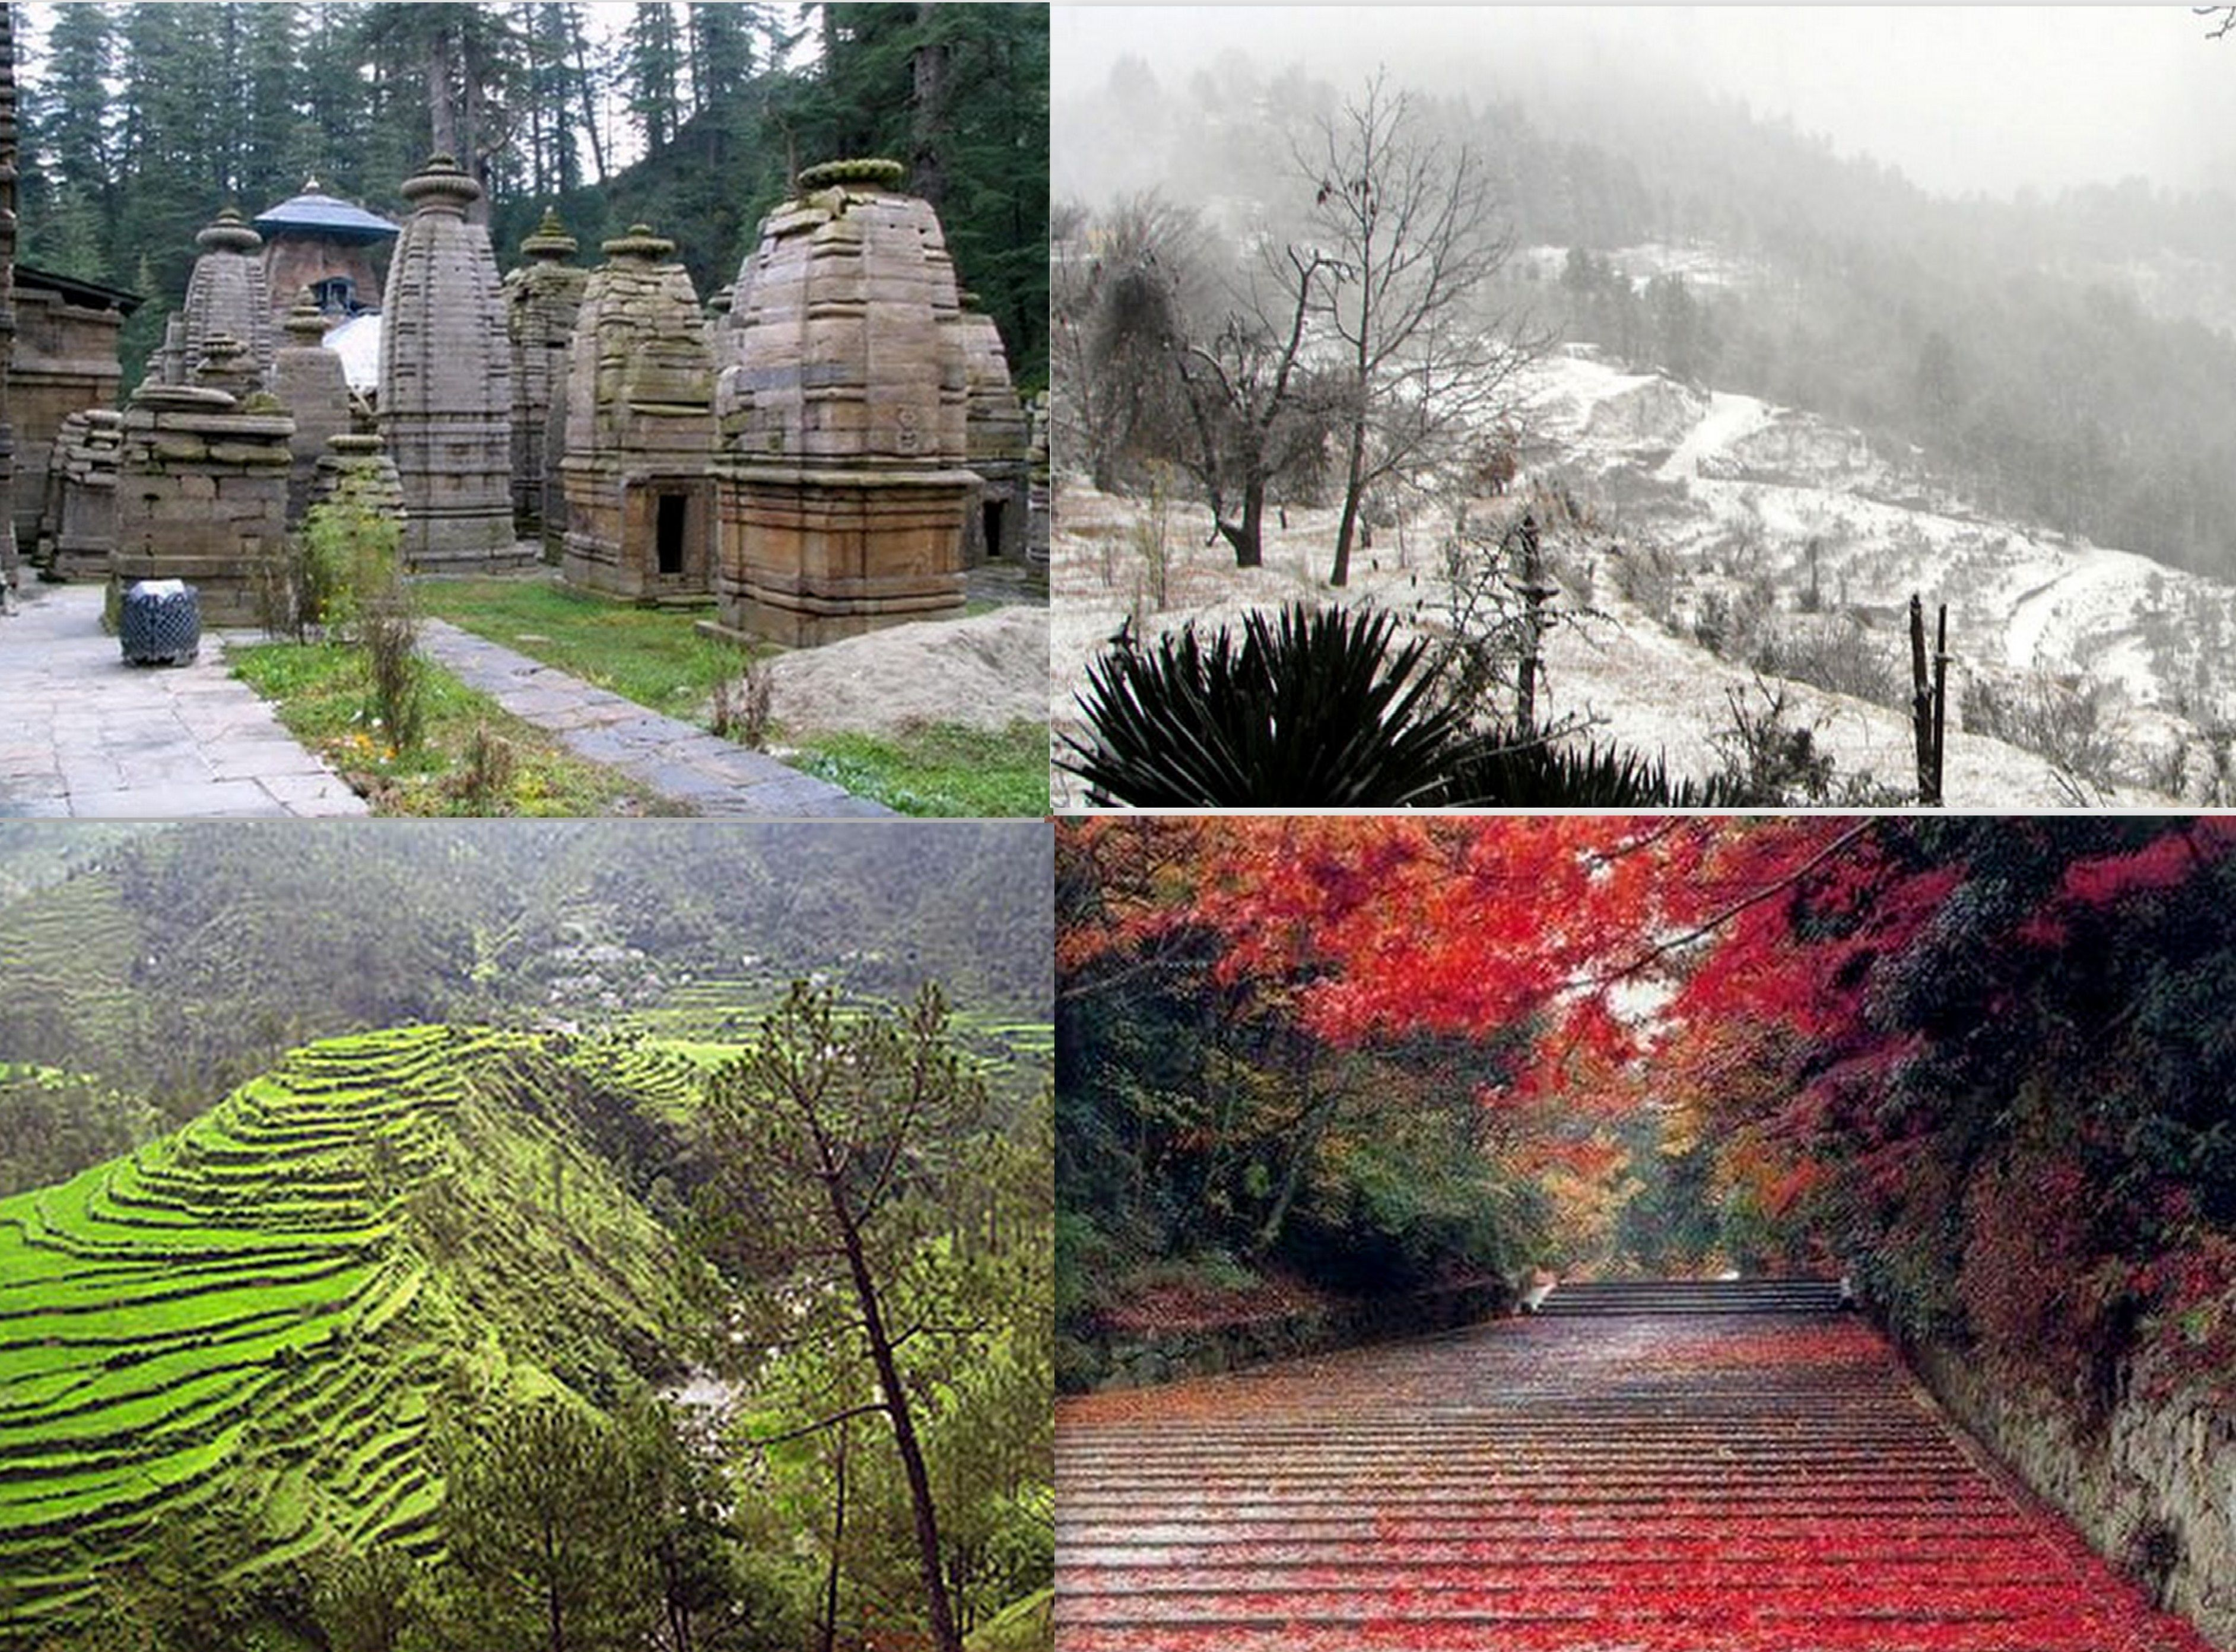 Almora  Almora located in the state of Uttarakhand is not just a scenic wonder, it is also one of the richest hill stations in the country in terms of cultural heritage. This place was frequently visited by Swami Vivekananda, who loved to meditate here and write his famous speeches from here.